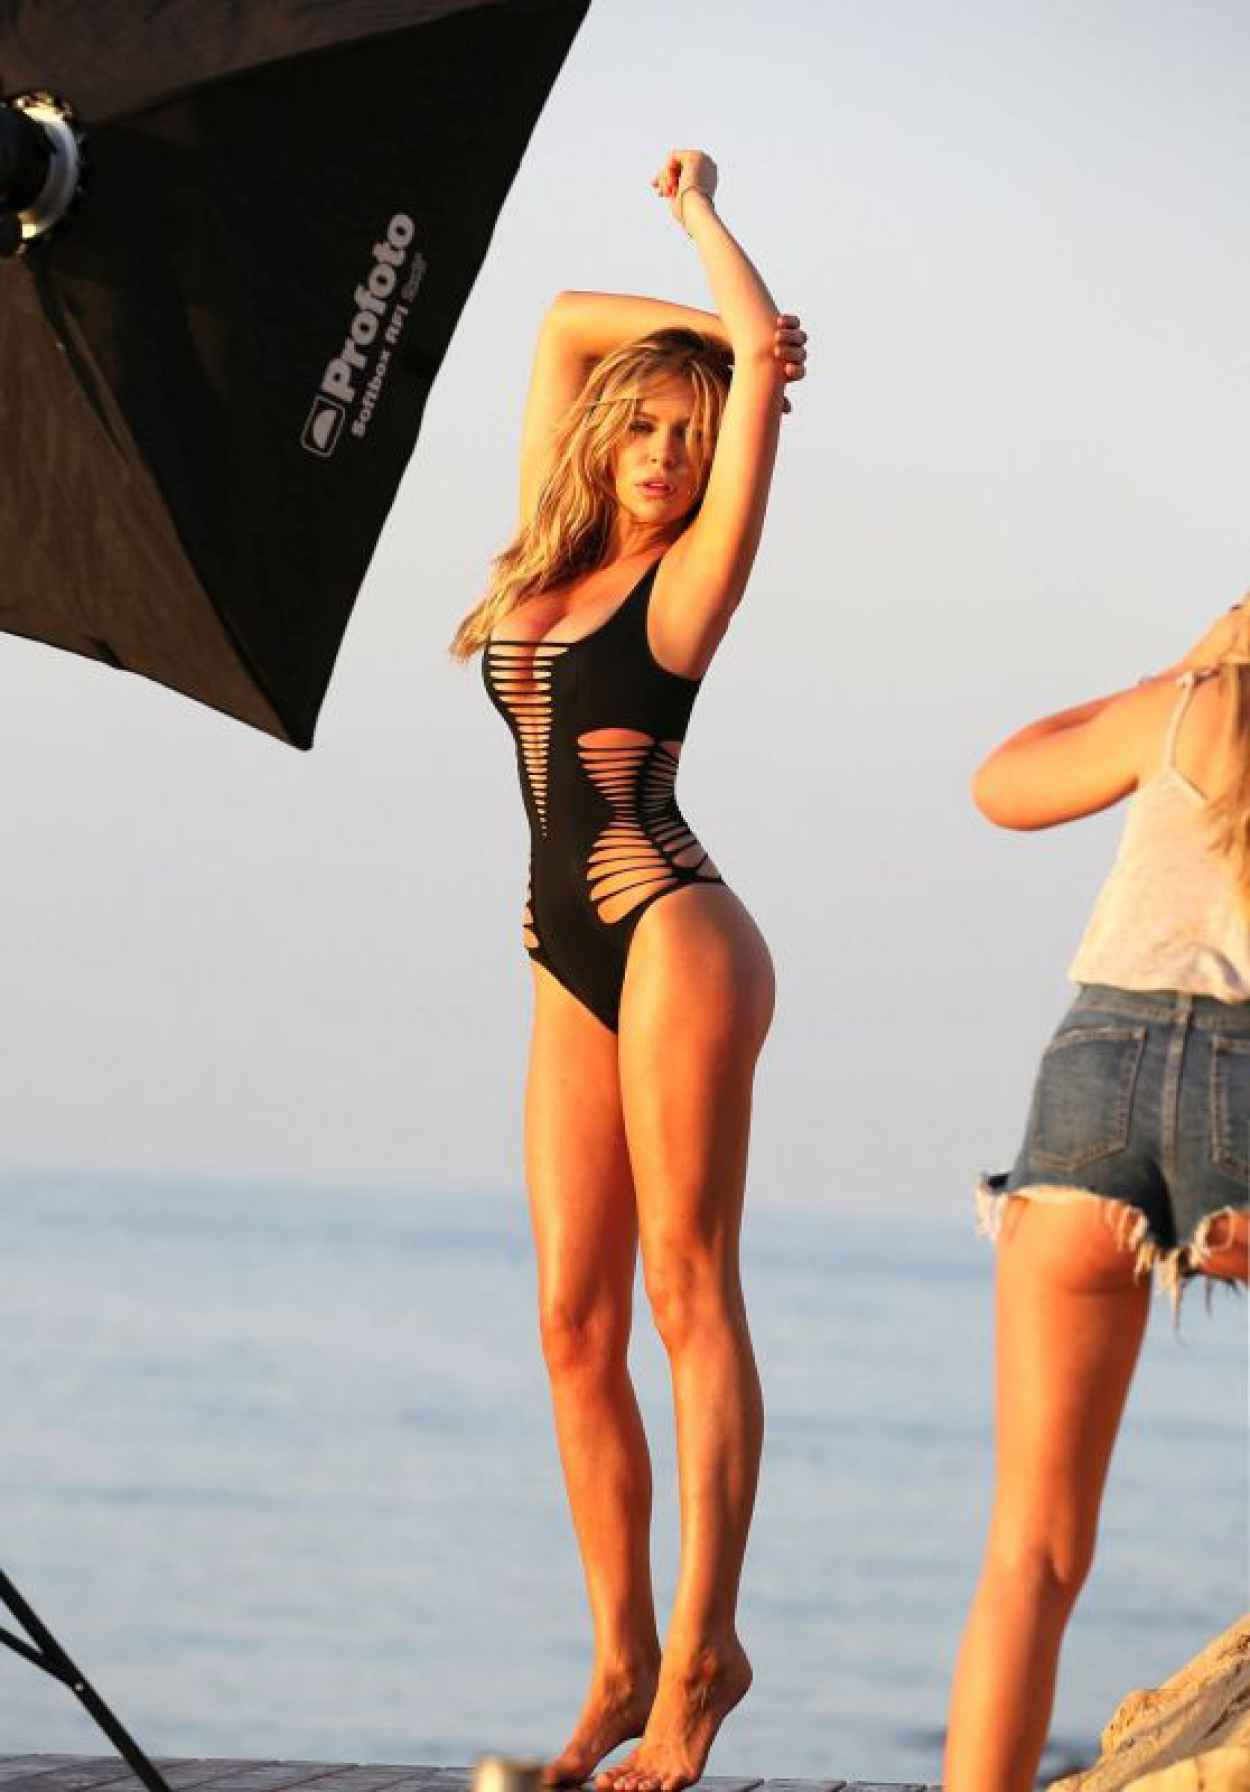 Abbey Clancy in a Black One-Piece Swimsuit - Photoshoot in Majorca, July 2015-1